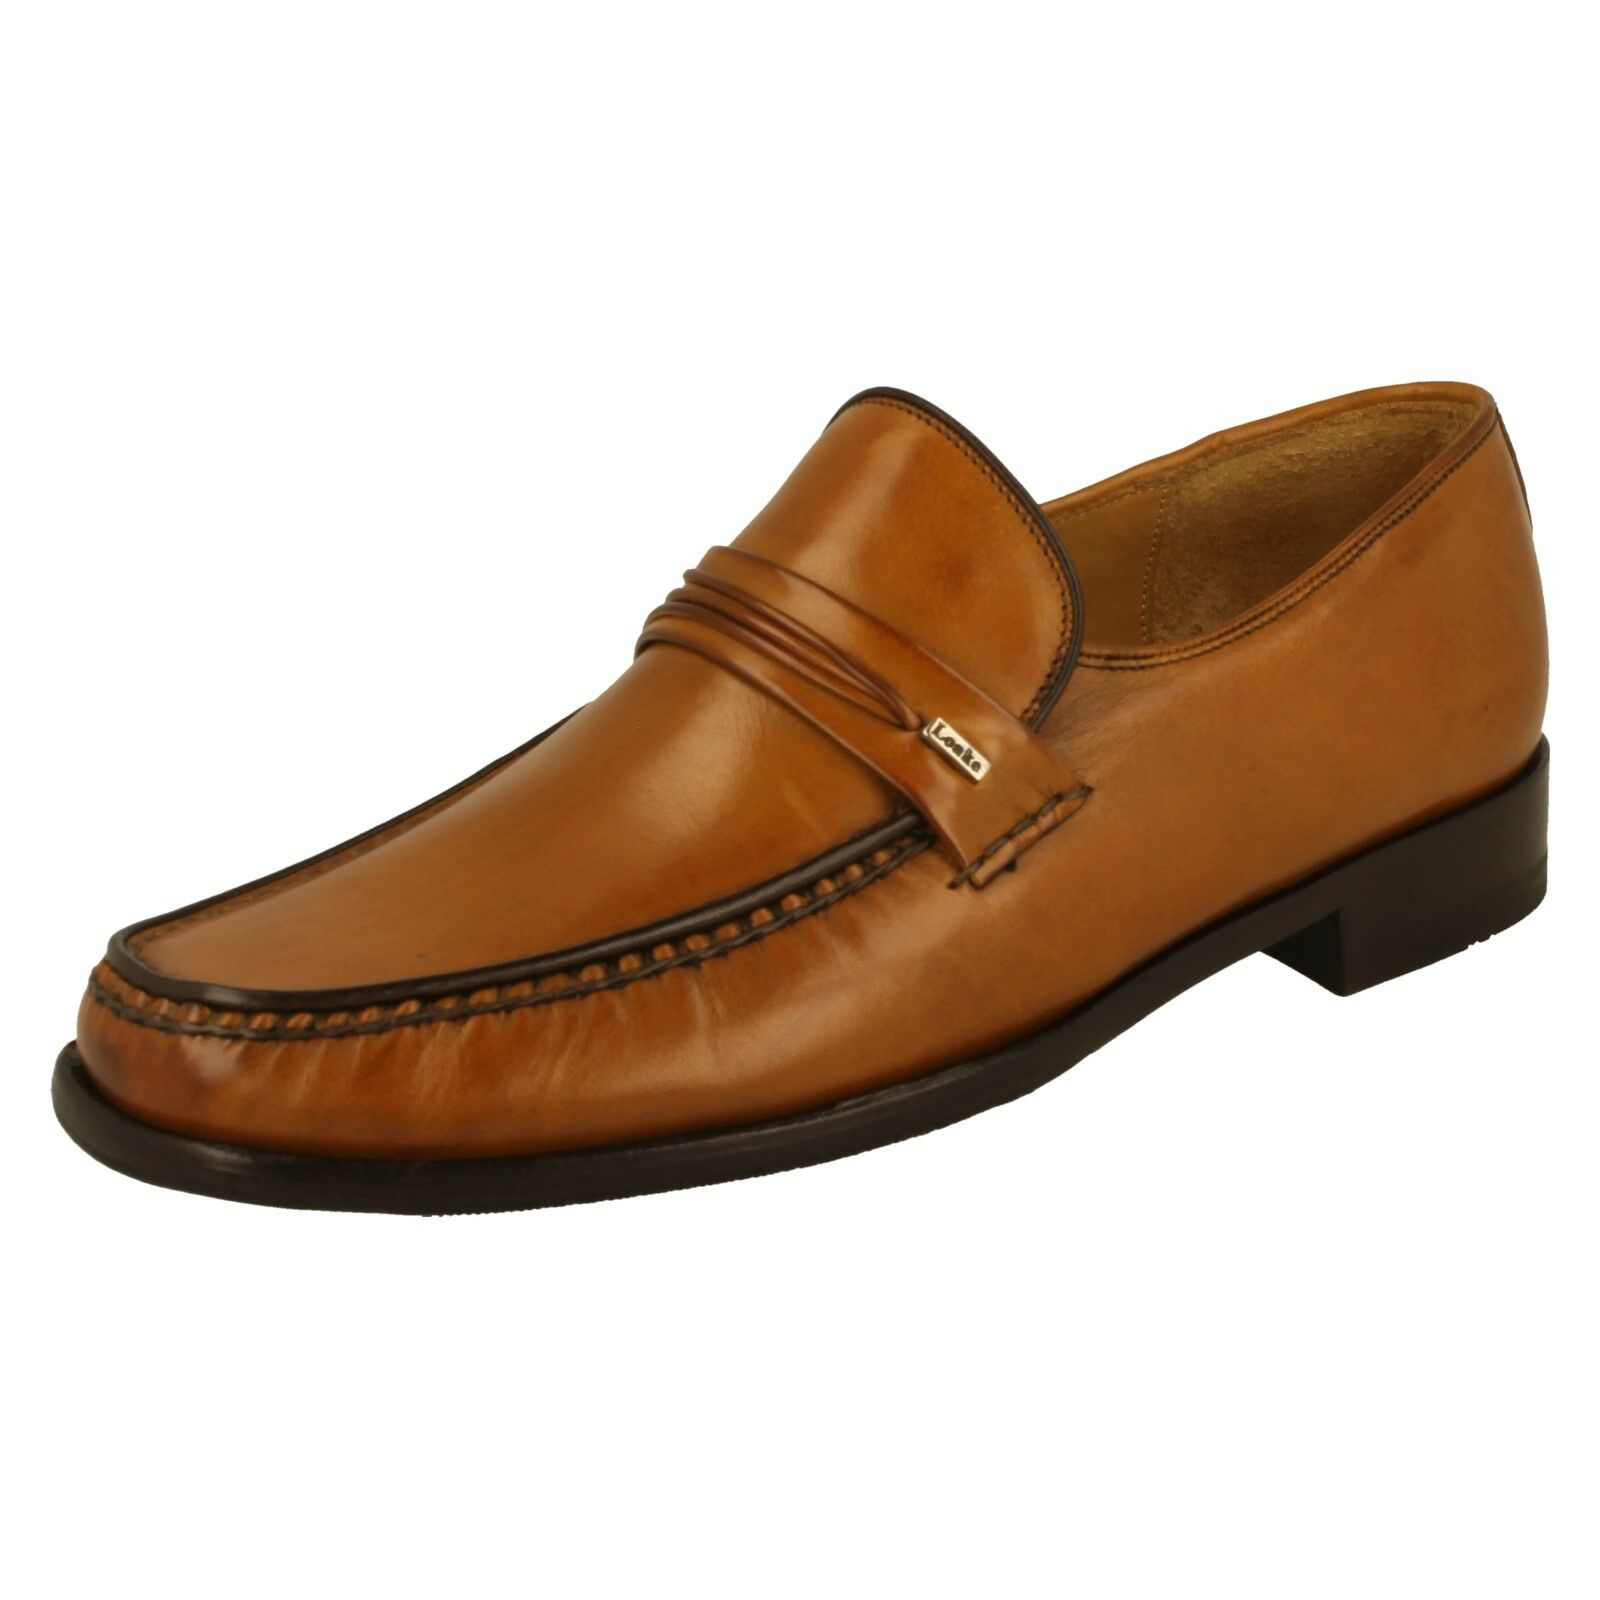 Mens Loake Shoes - Palermo